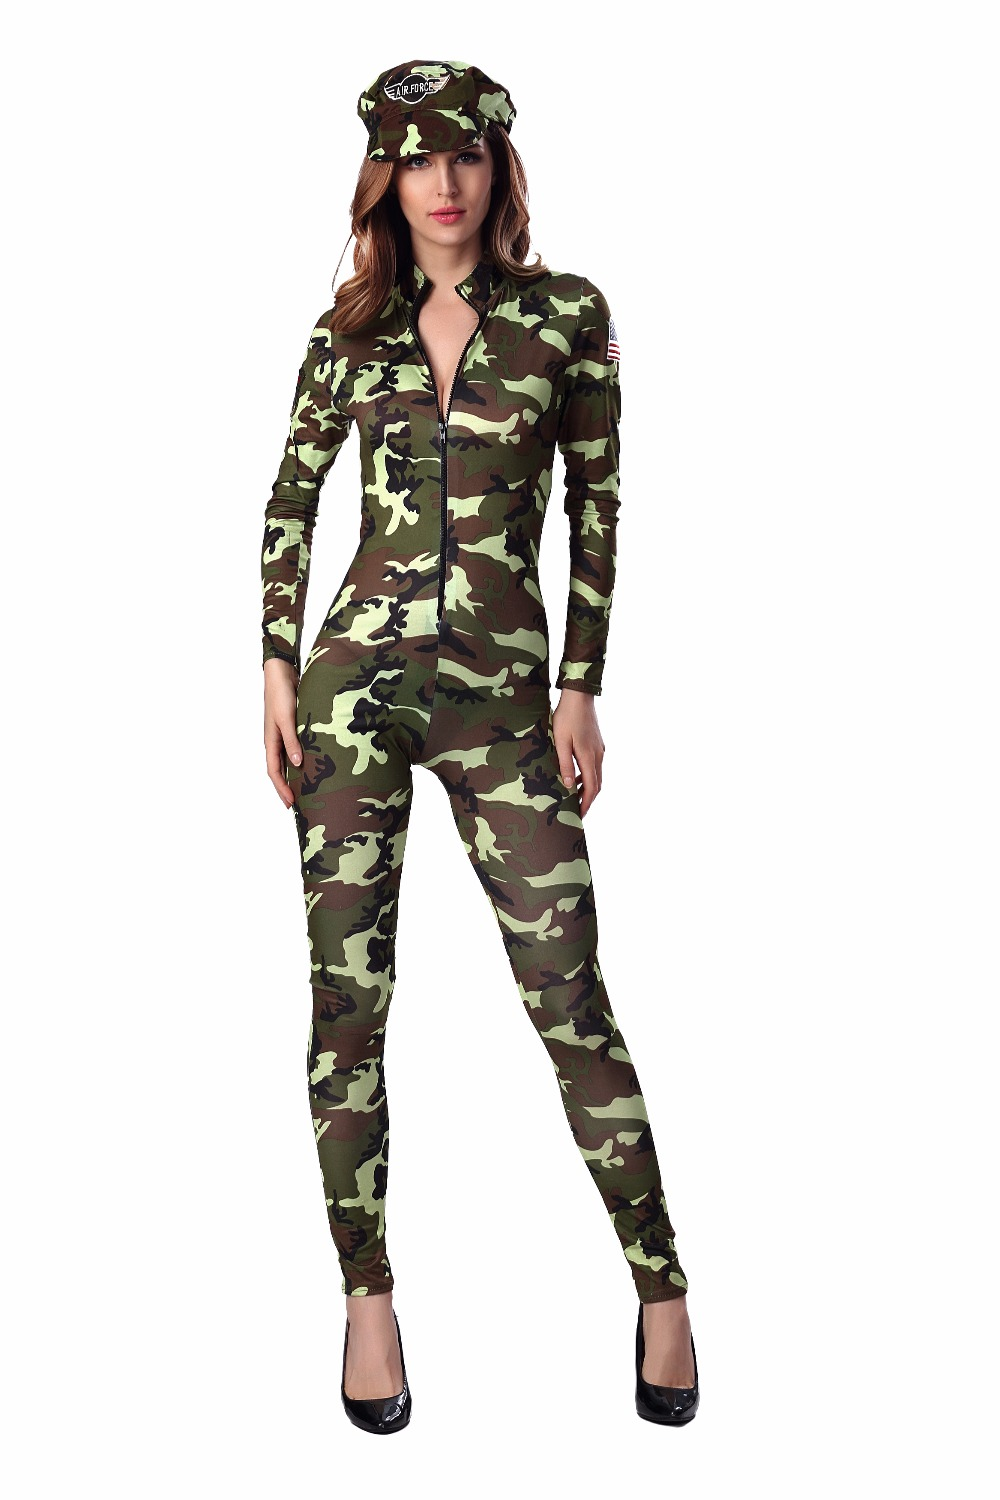 Halloween <font><b>Sexy</b></font> Camouflage Women Costumes <font><b>Army</b></font> Soldier Air Force Commander Policewoman <font><b>Cosplay</b></font> Jumpsuits For Lady Adult image